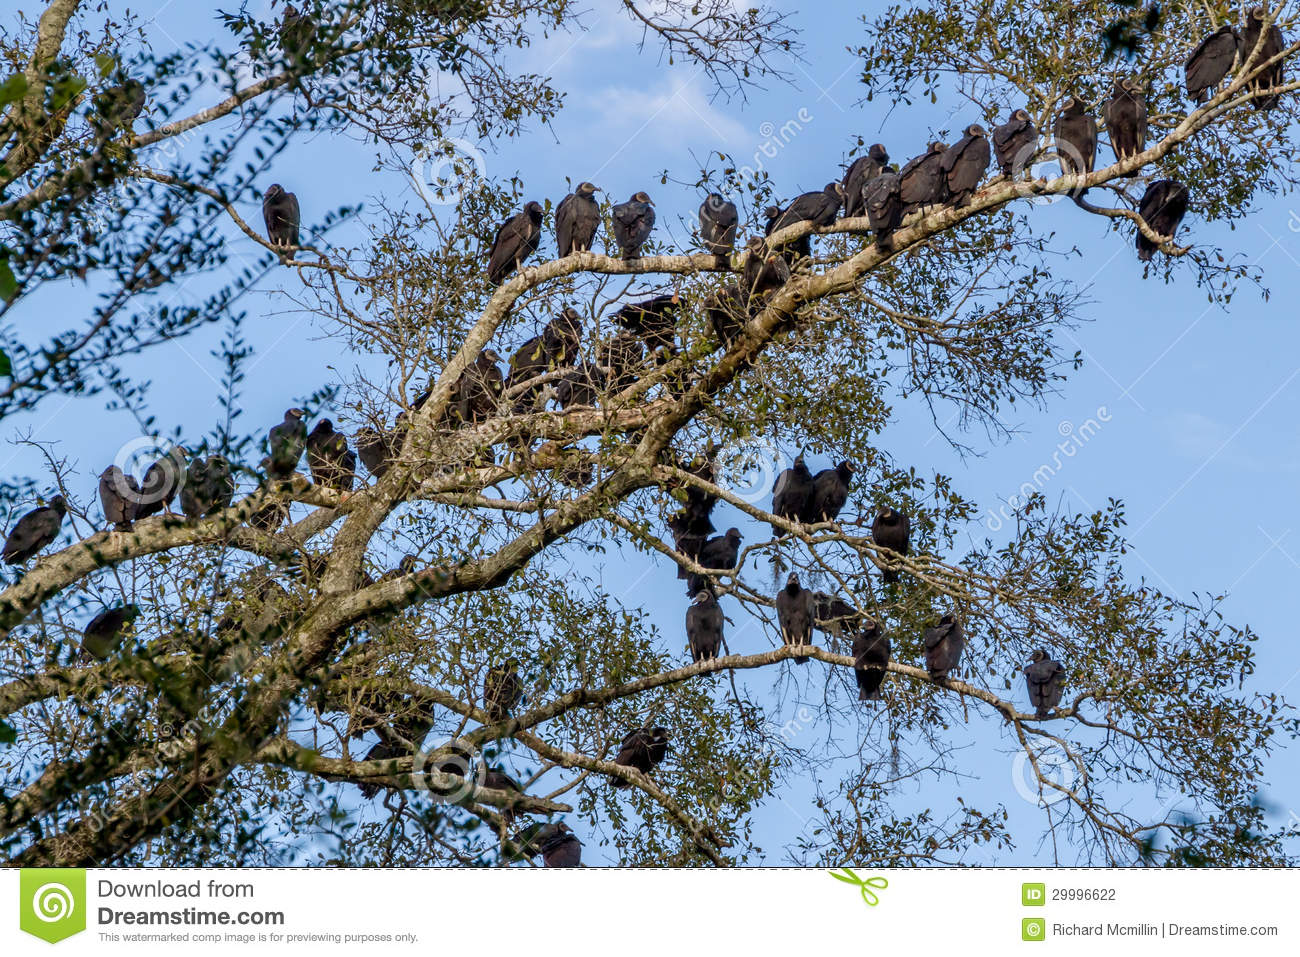 Large number of buzzards social birds of opportunity